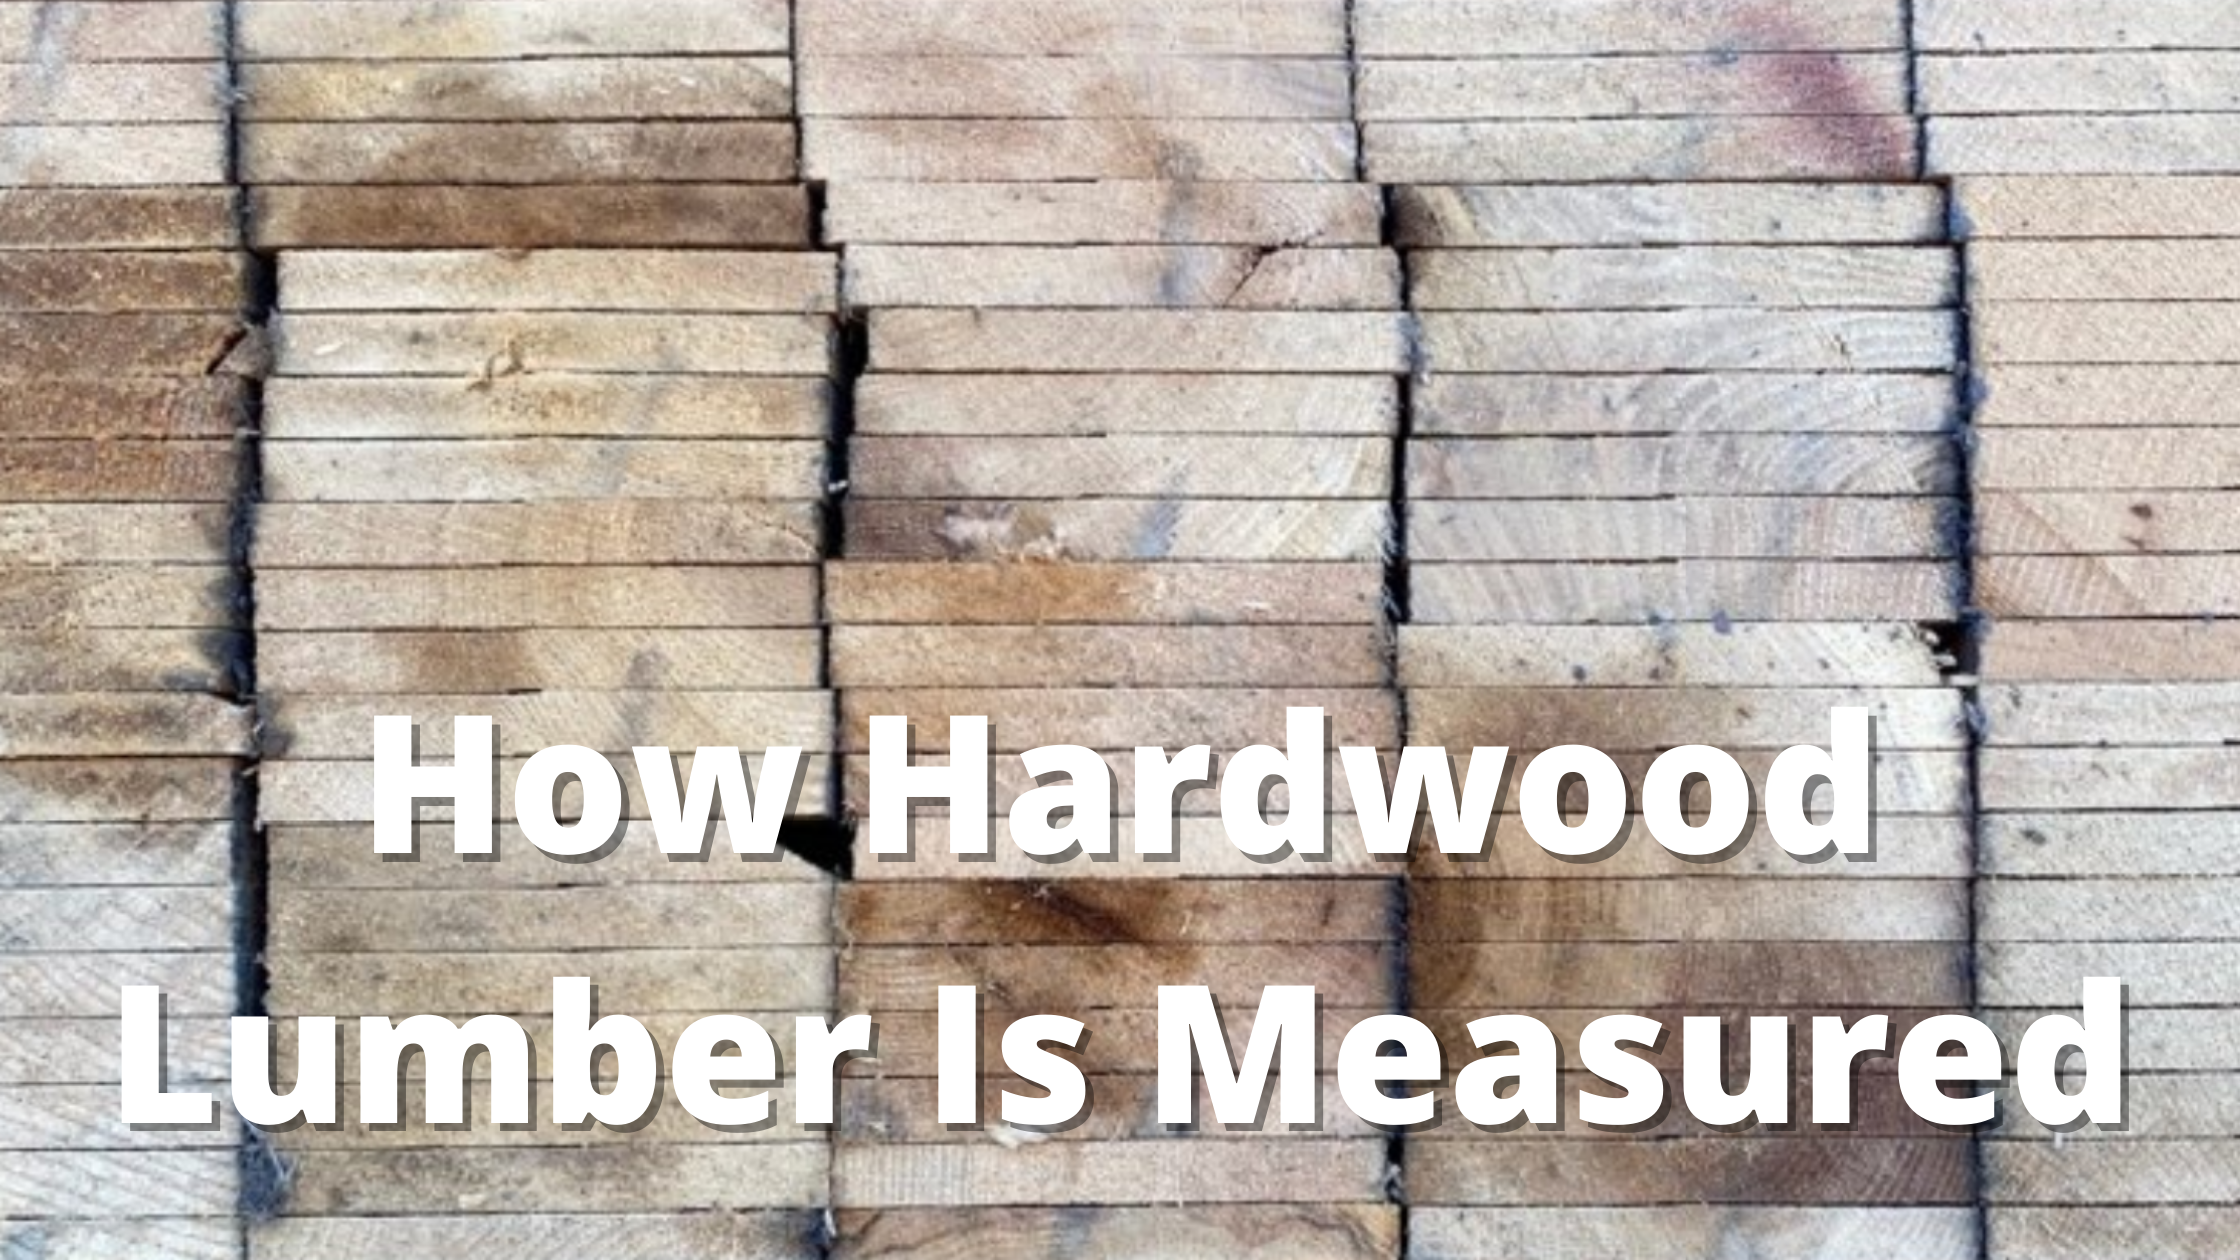 how hardwood lumber is measured banner